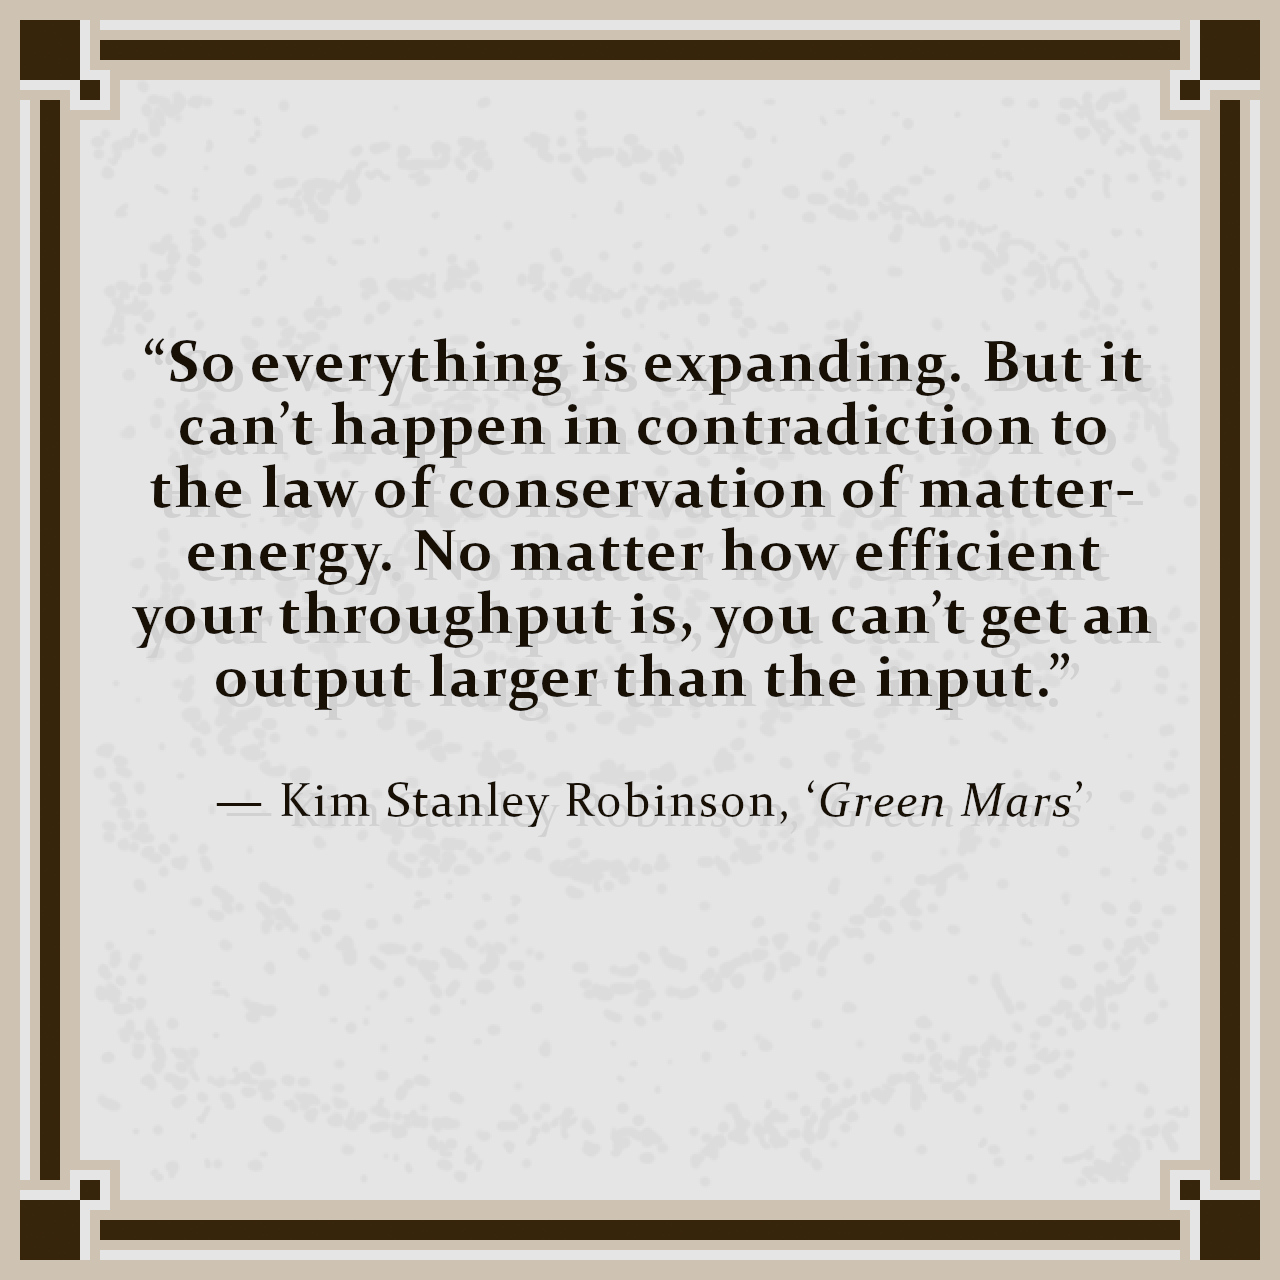 """""""So everything is expanding. But it can't happen in contradiction to the law of conservation of matter-energy. No matter how efficient your throughput is, you can't get an output larger than the input.""""  — Kim Stanley Robinson, 'Green Mars'"""